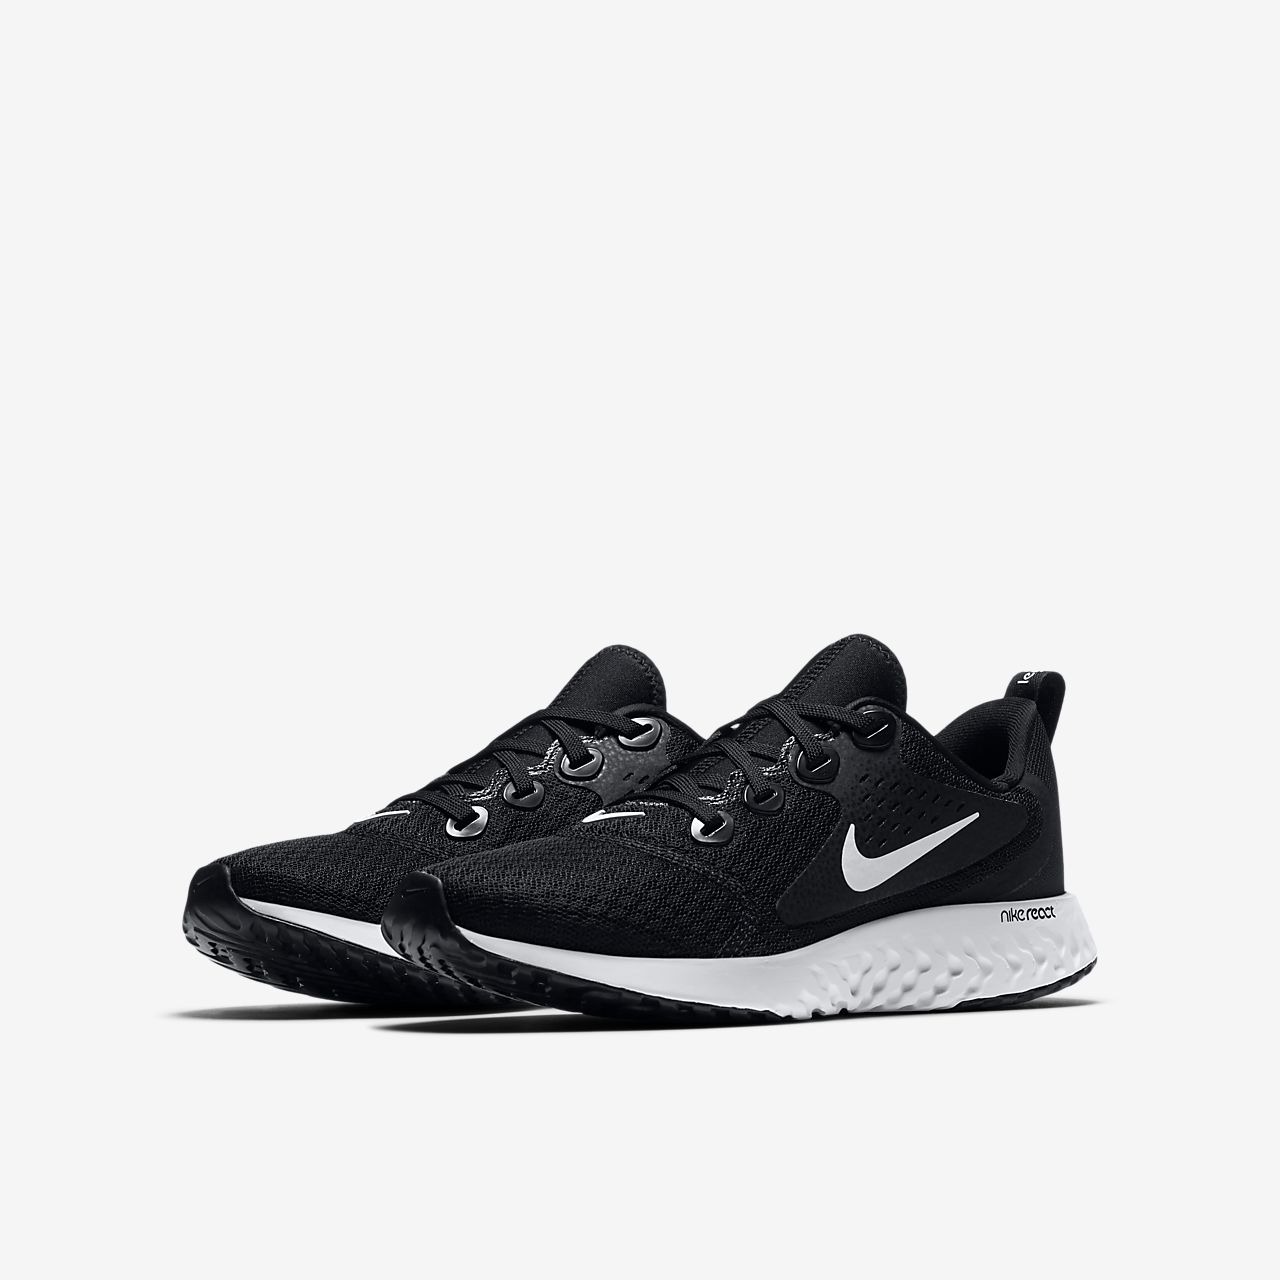 bda1ca755b5 Nike Legend React Big Kids  Running Shoe. Nike.com